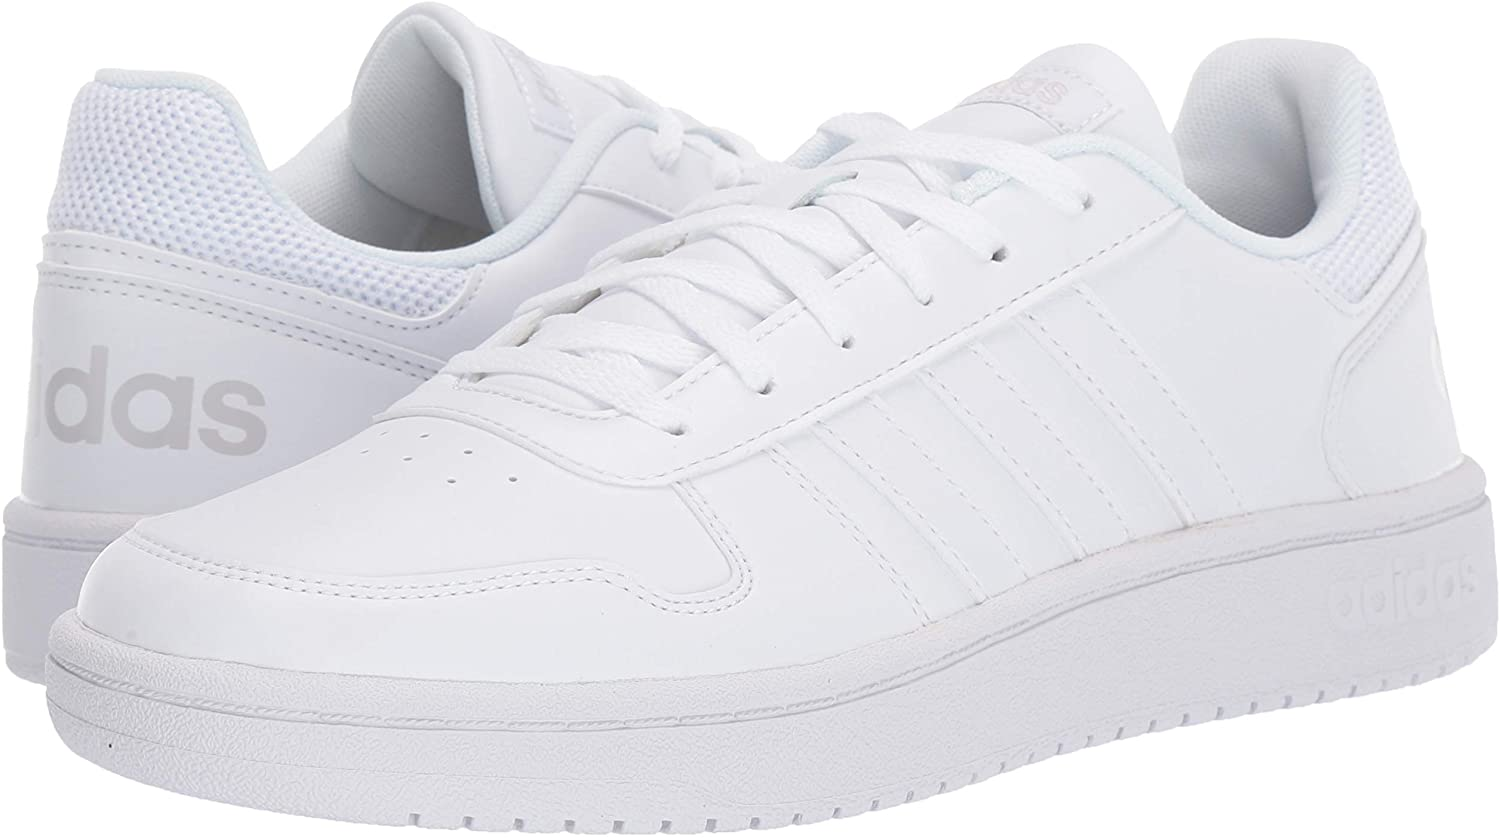 Basketball-style court sneakers made from synthetic material with mesh collar and rubber sole